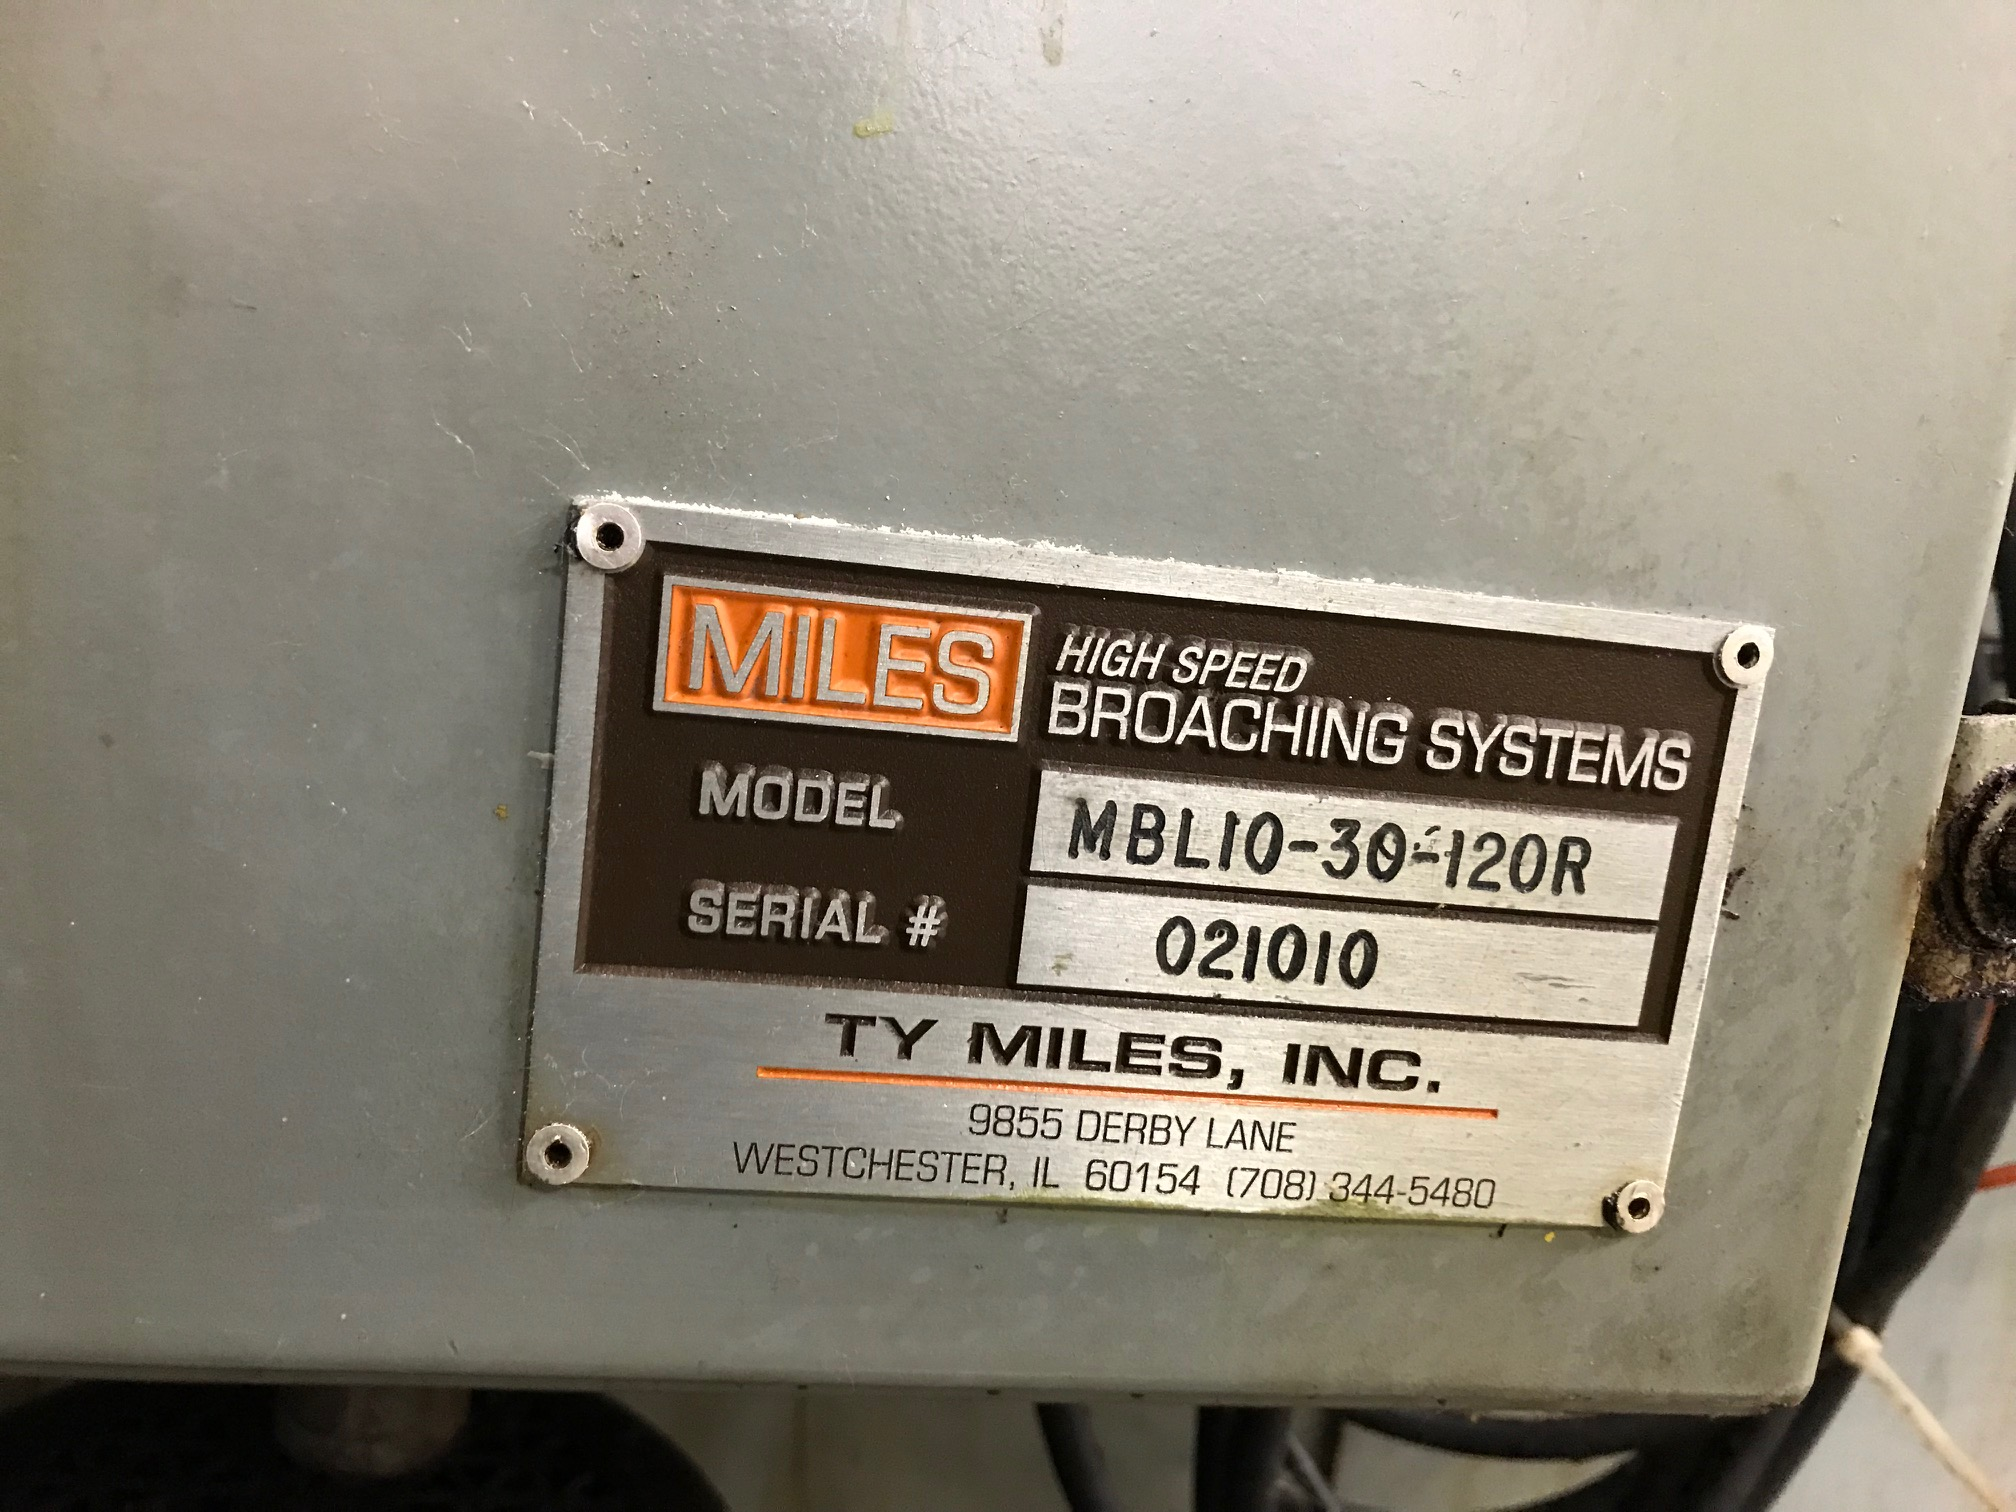 Lot 2 - TY MILES HIGH SPEED BROACH, MODEL MBL10-30-12OR, SN 021010, LOCATION IL